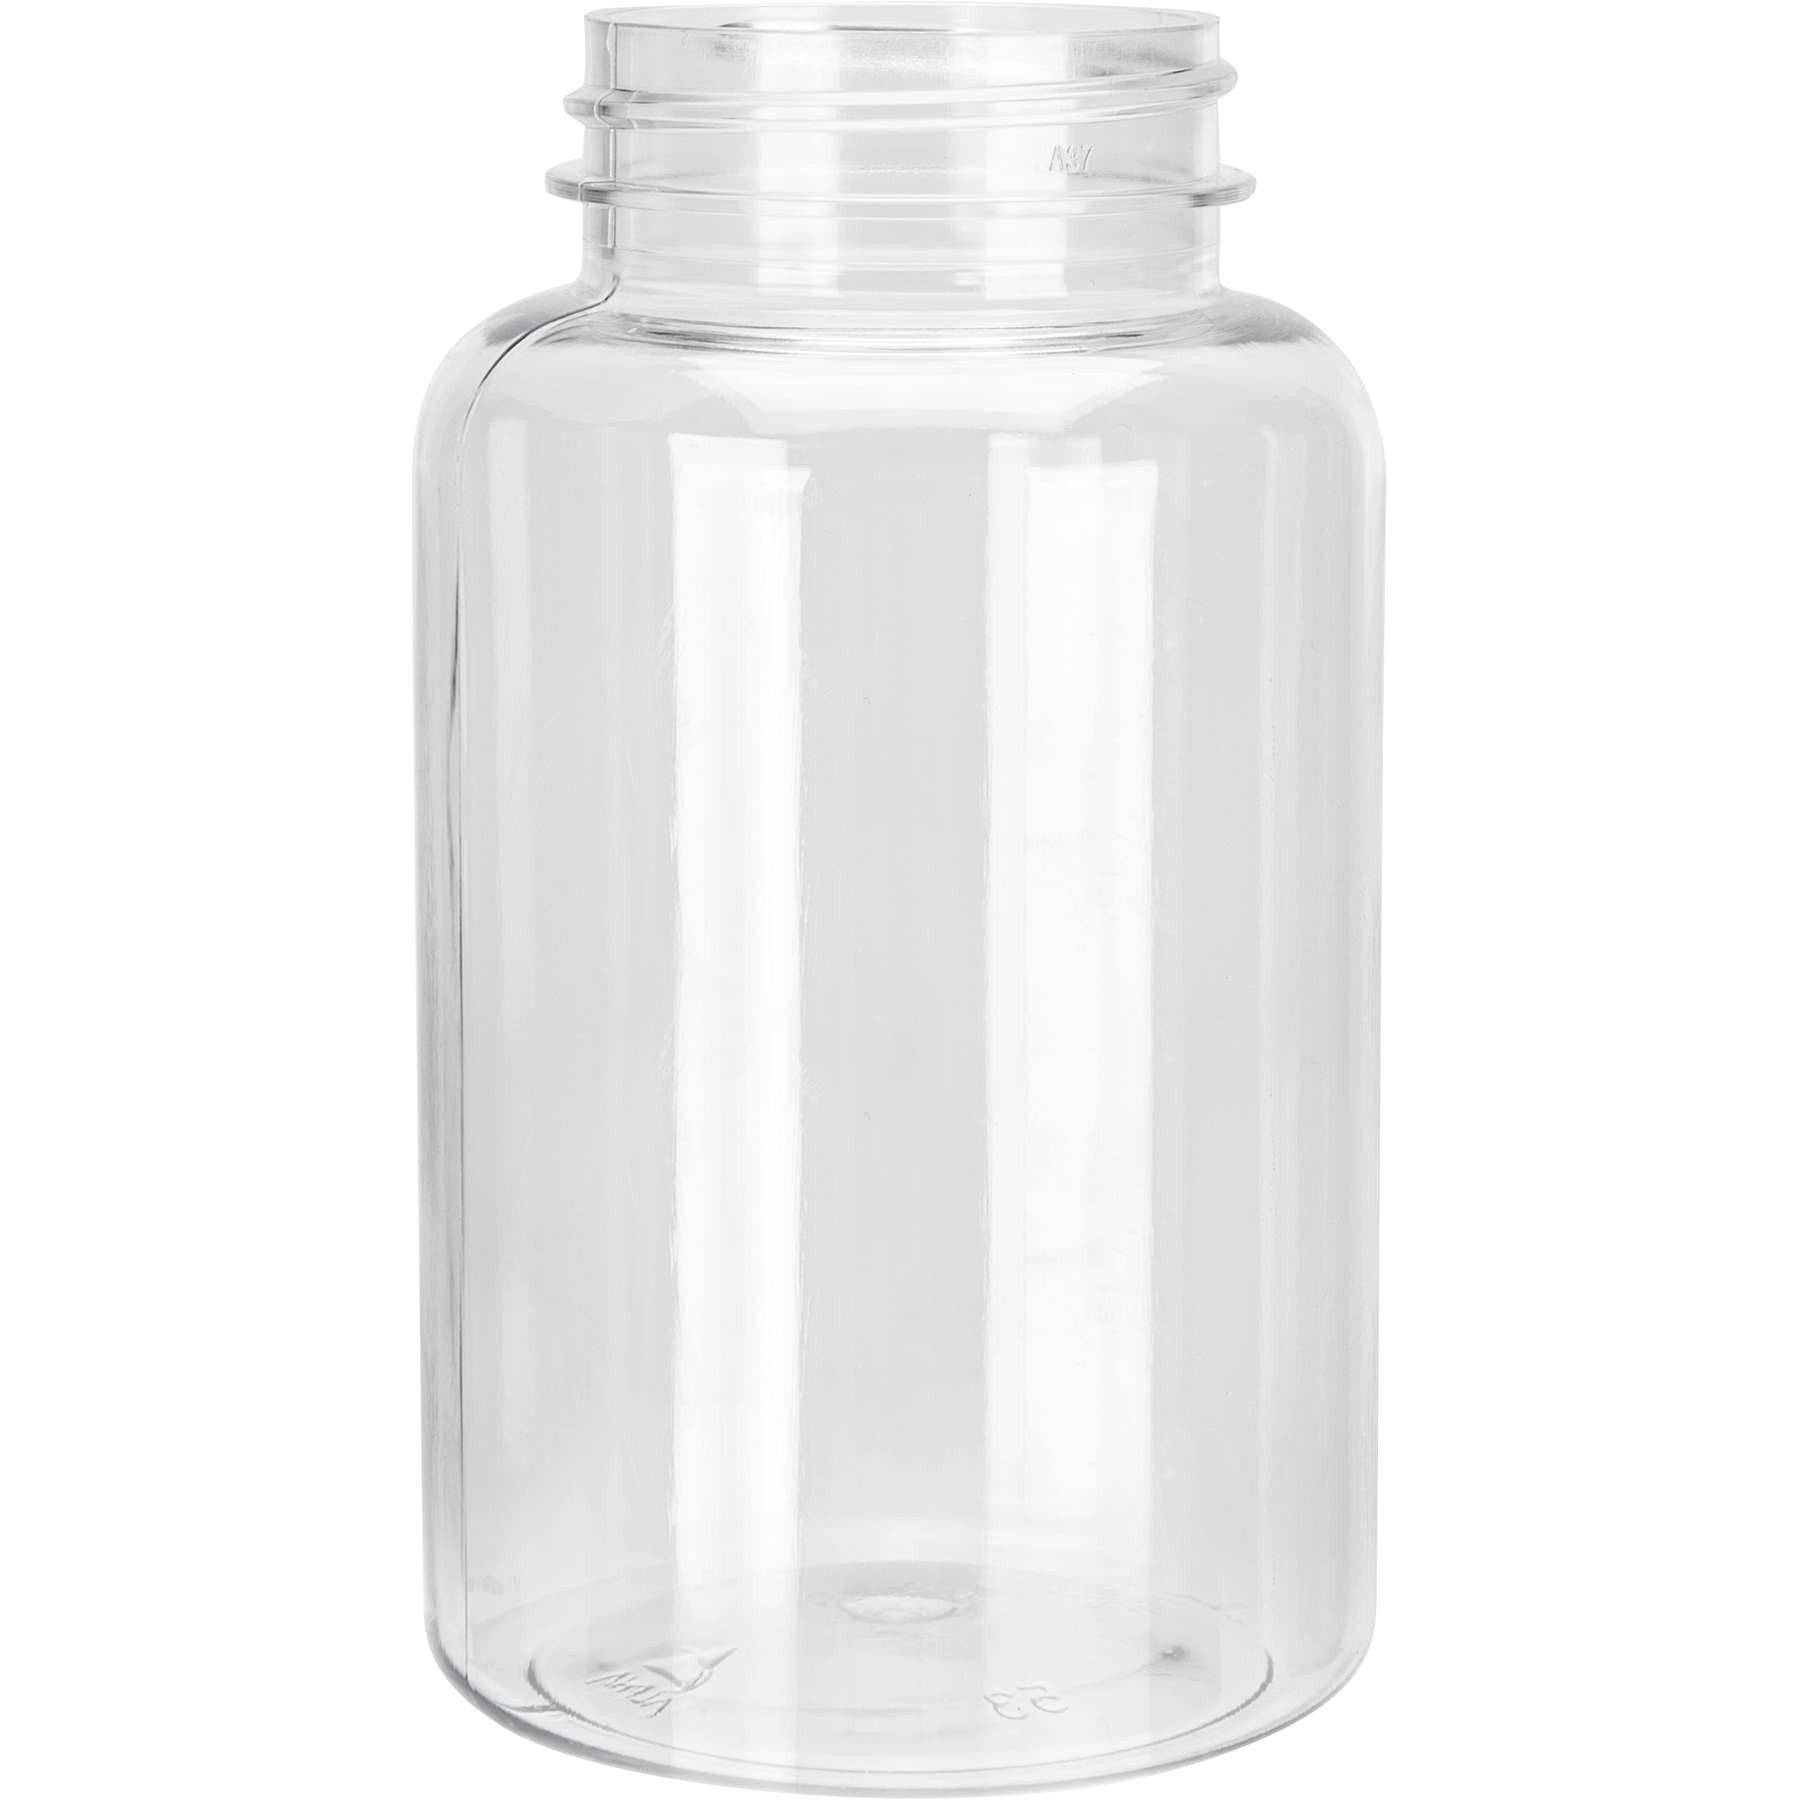 250cc Clear PET pill packer bottle with 45-400 neck finish CASED 300 - Rock Bottom Bottles / Packaging Company LLC